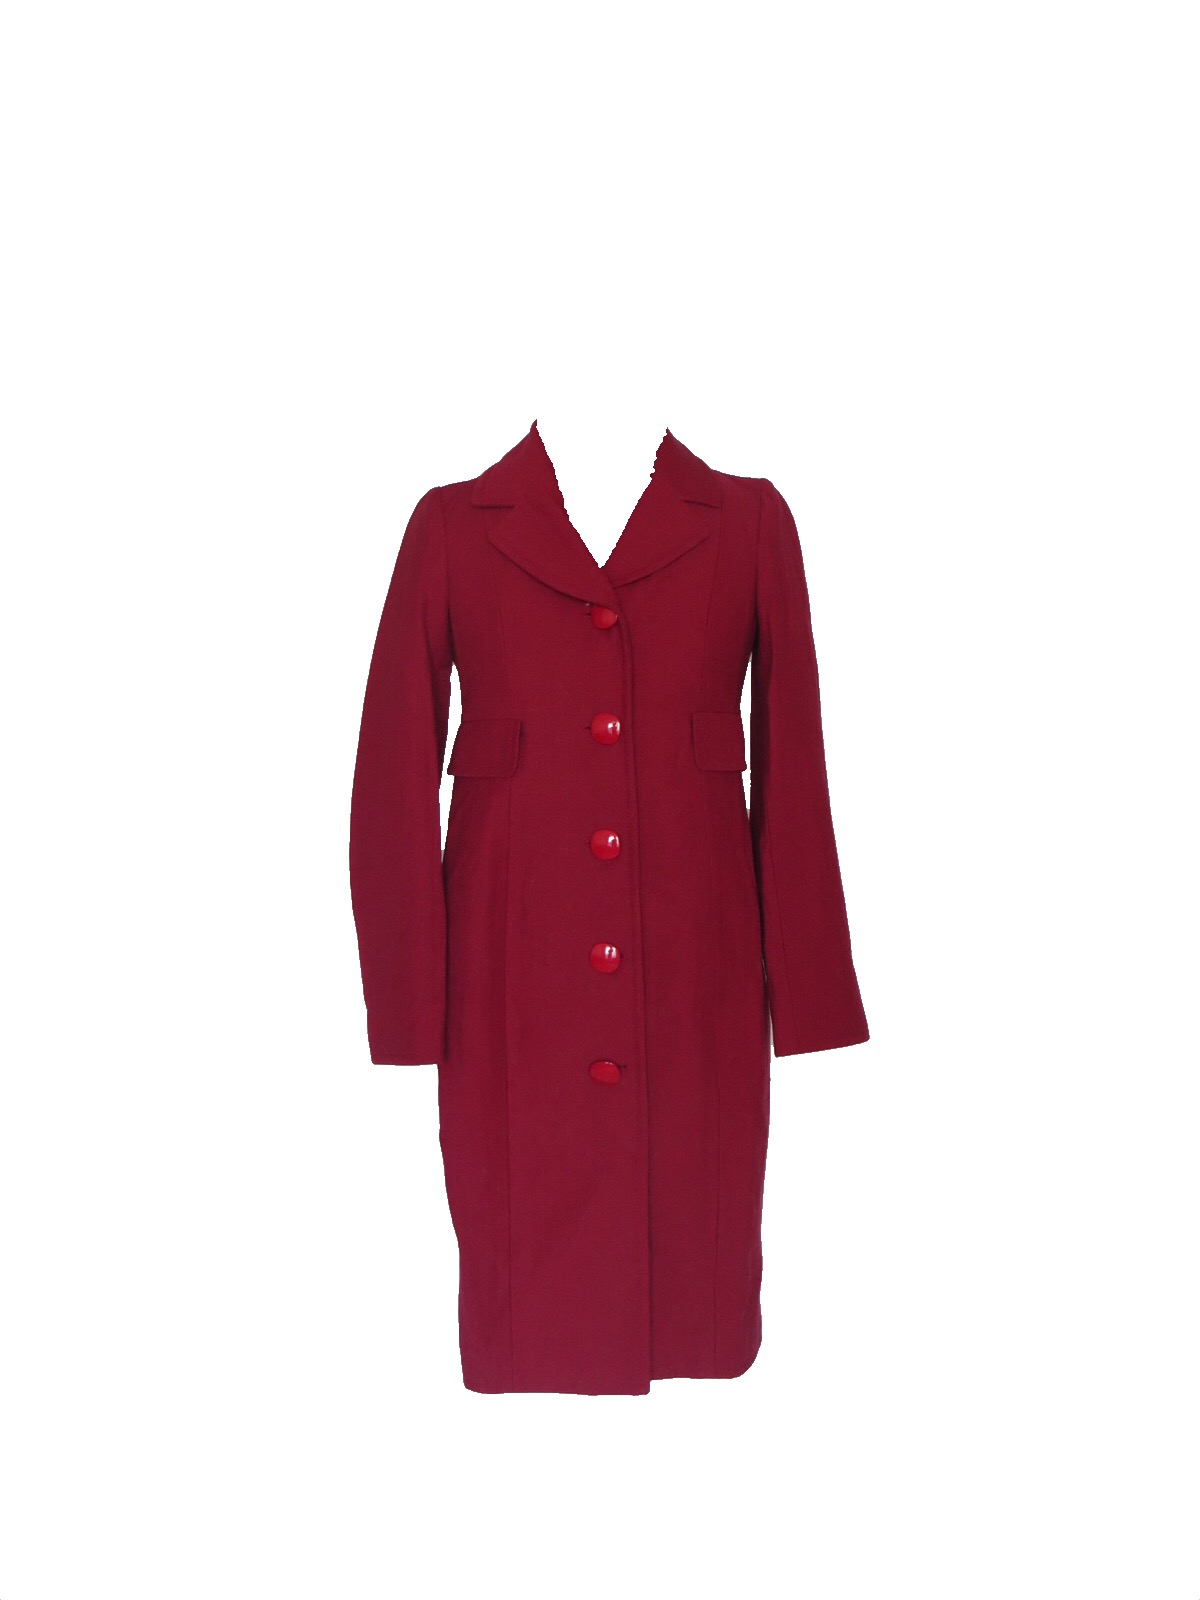 e79a88ec4e0dd Size 4 Moschino Cheap & Chic Red Wool Coat - Wooden Hanger